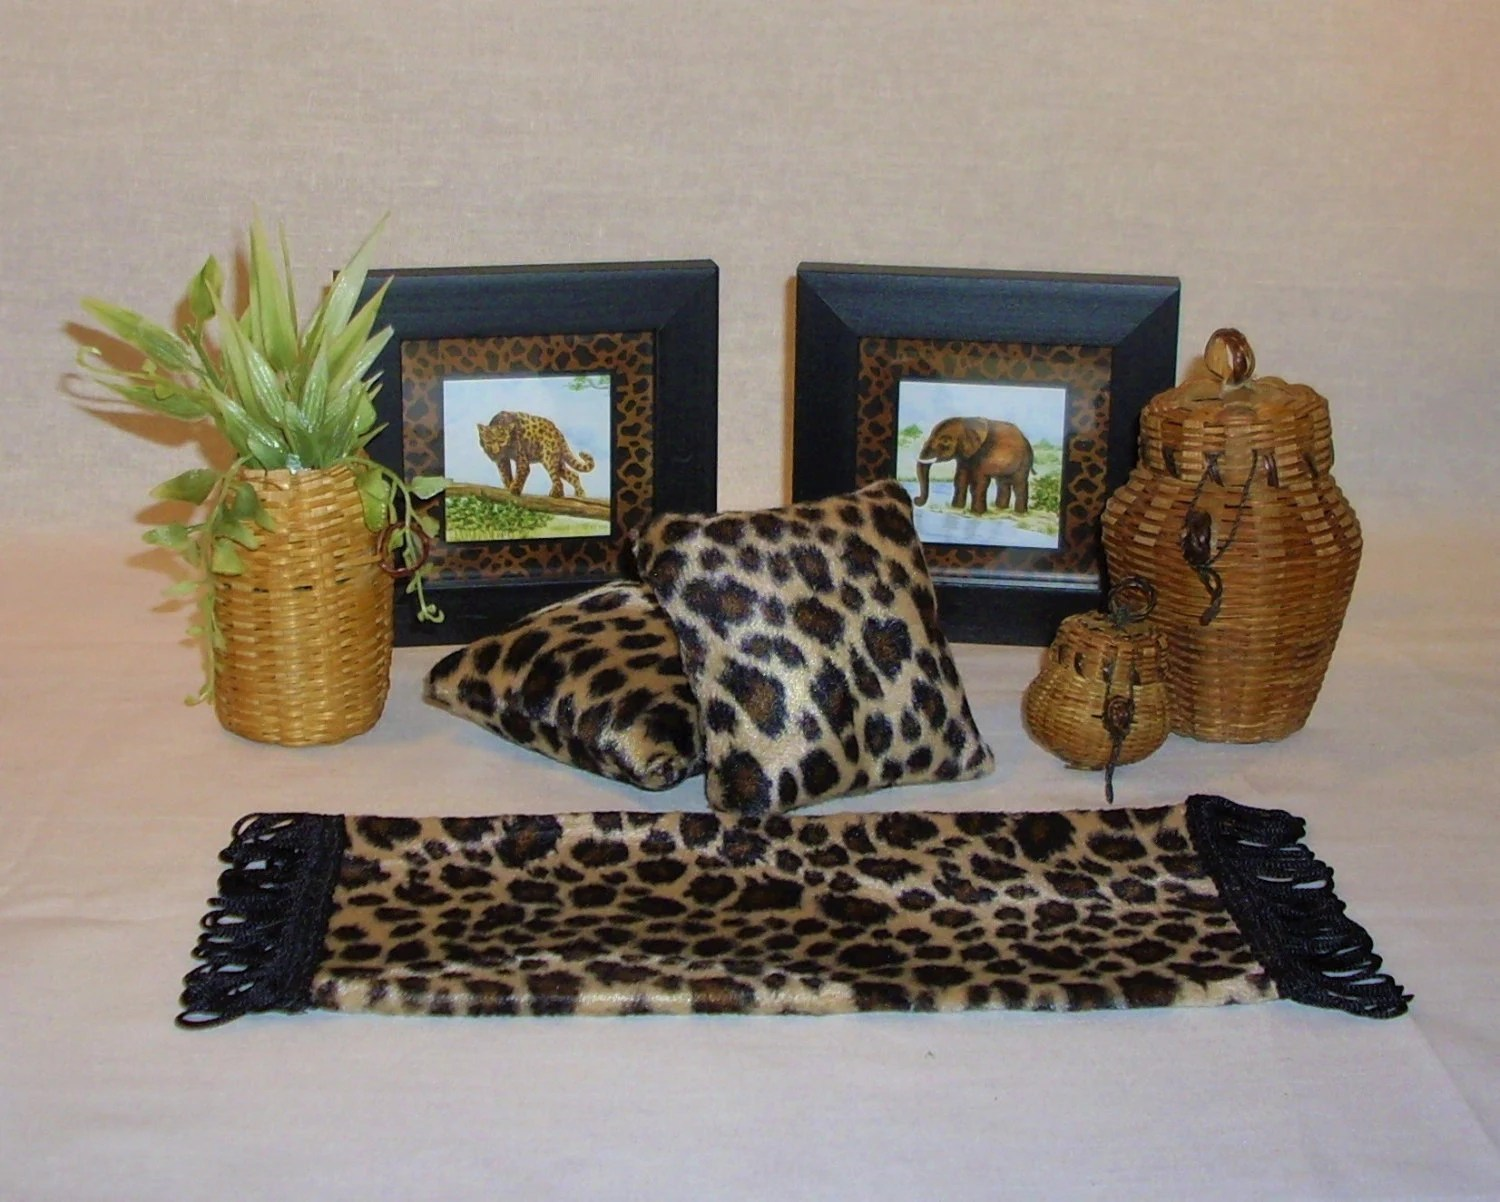 Best Doll Home Leopard Print Animal And Wicker Decor Lot Rug This Month